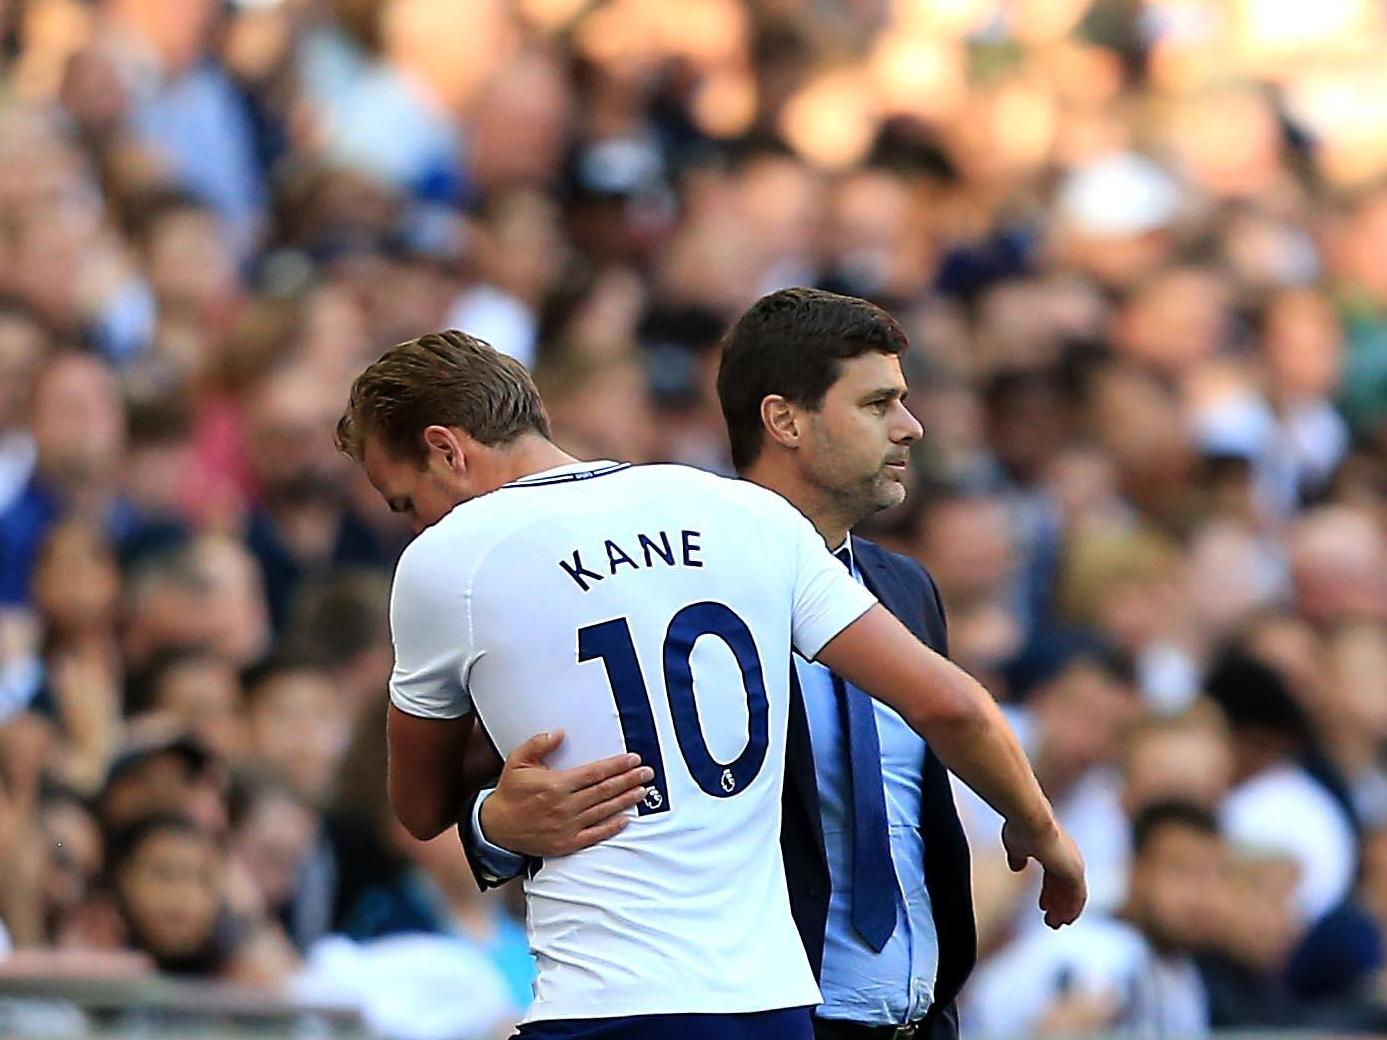 Tottenham Harry Kane Opens Up On Two Hour Mauricio Pochettino Visit After Spurs Sacking The Independent The Independent